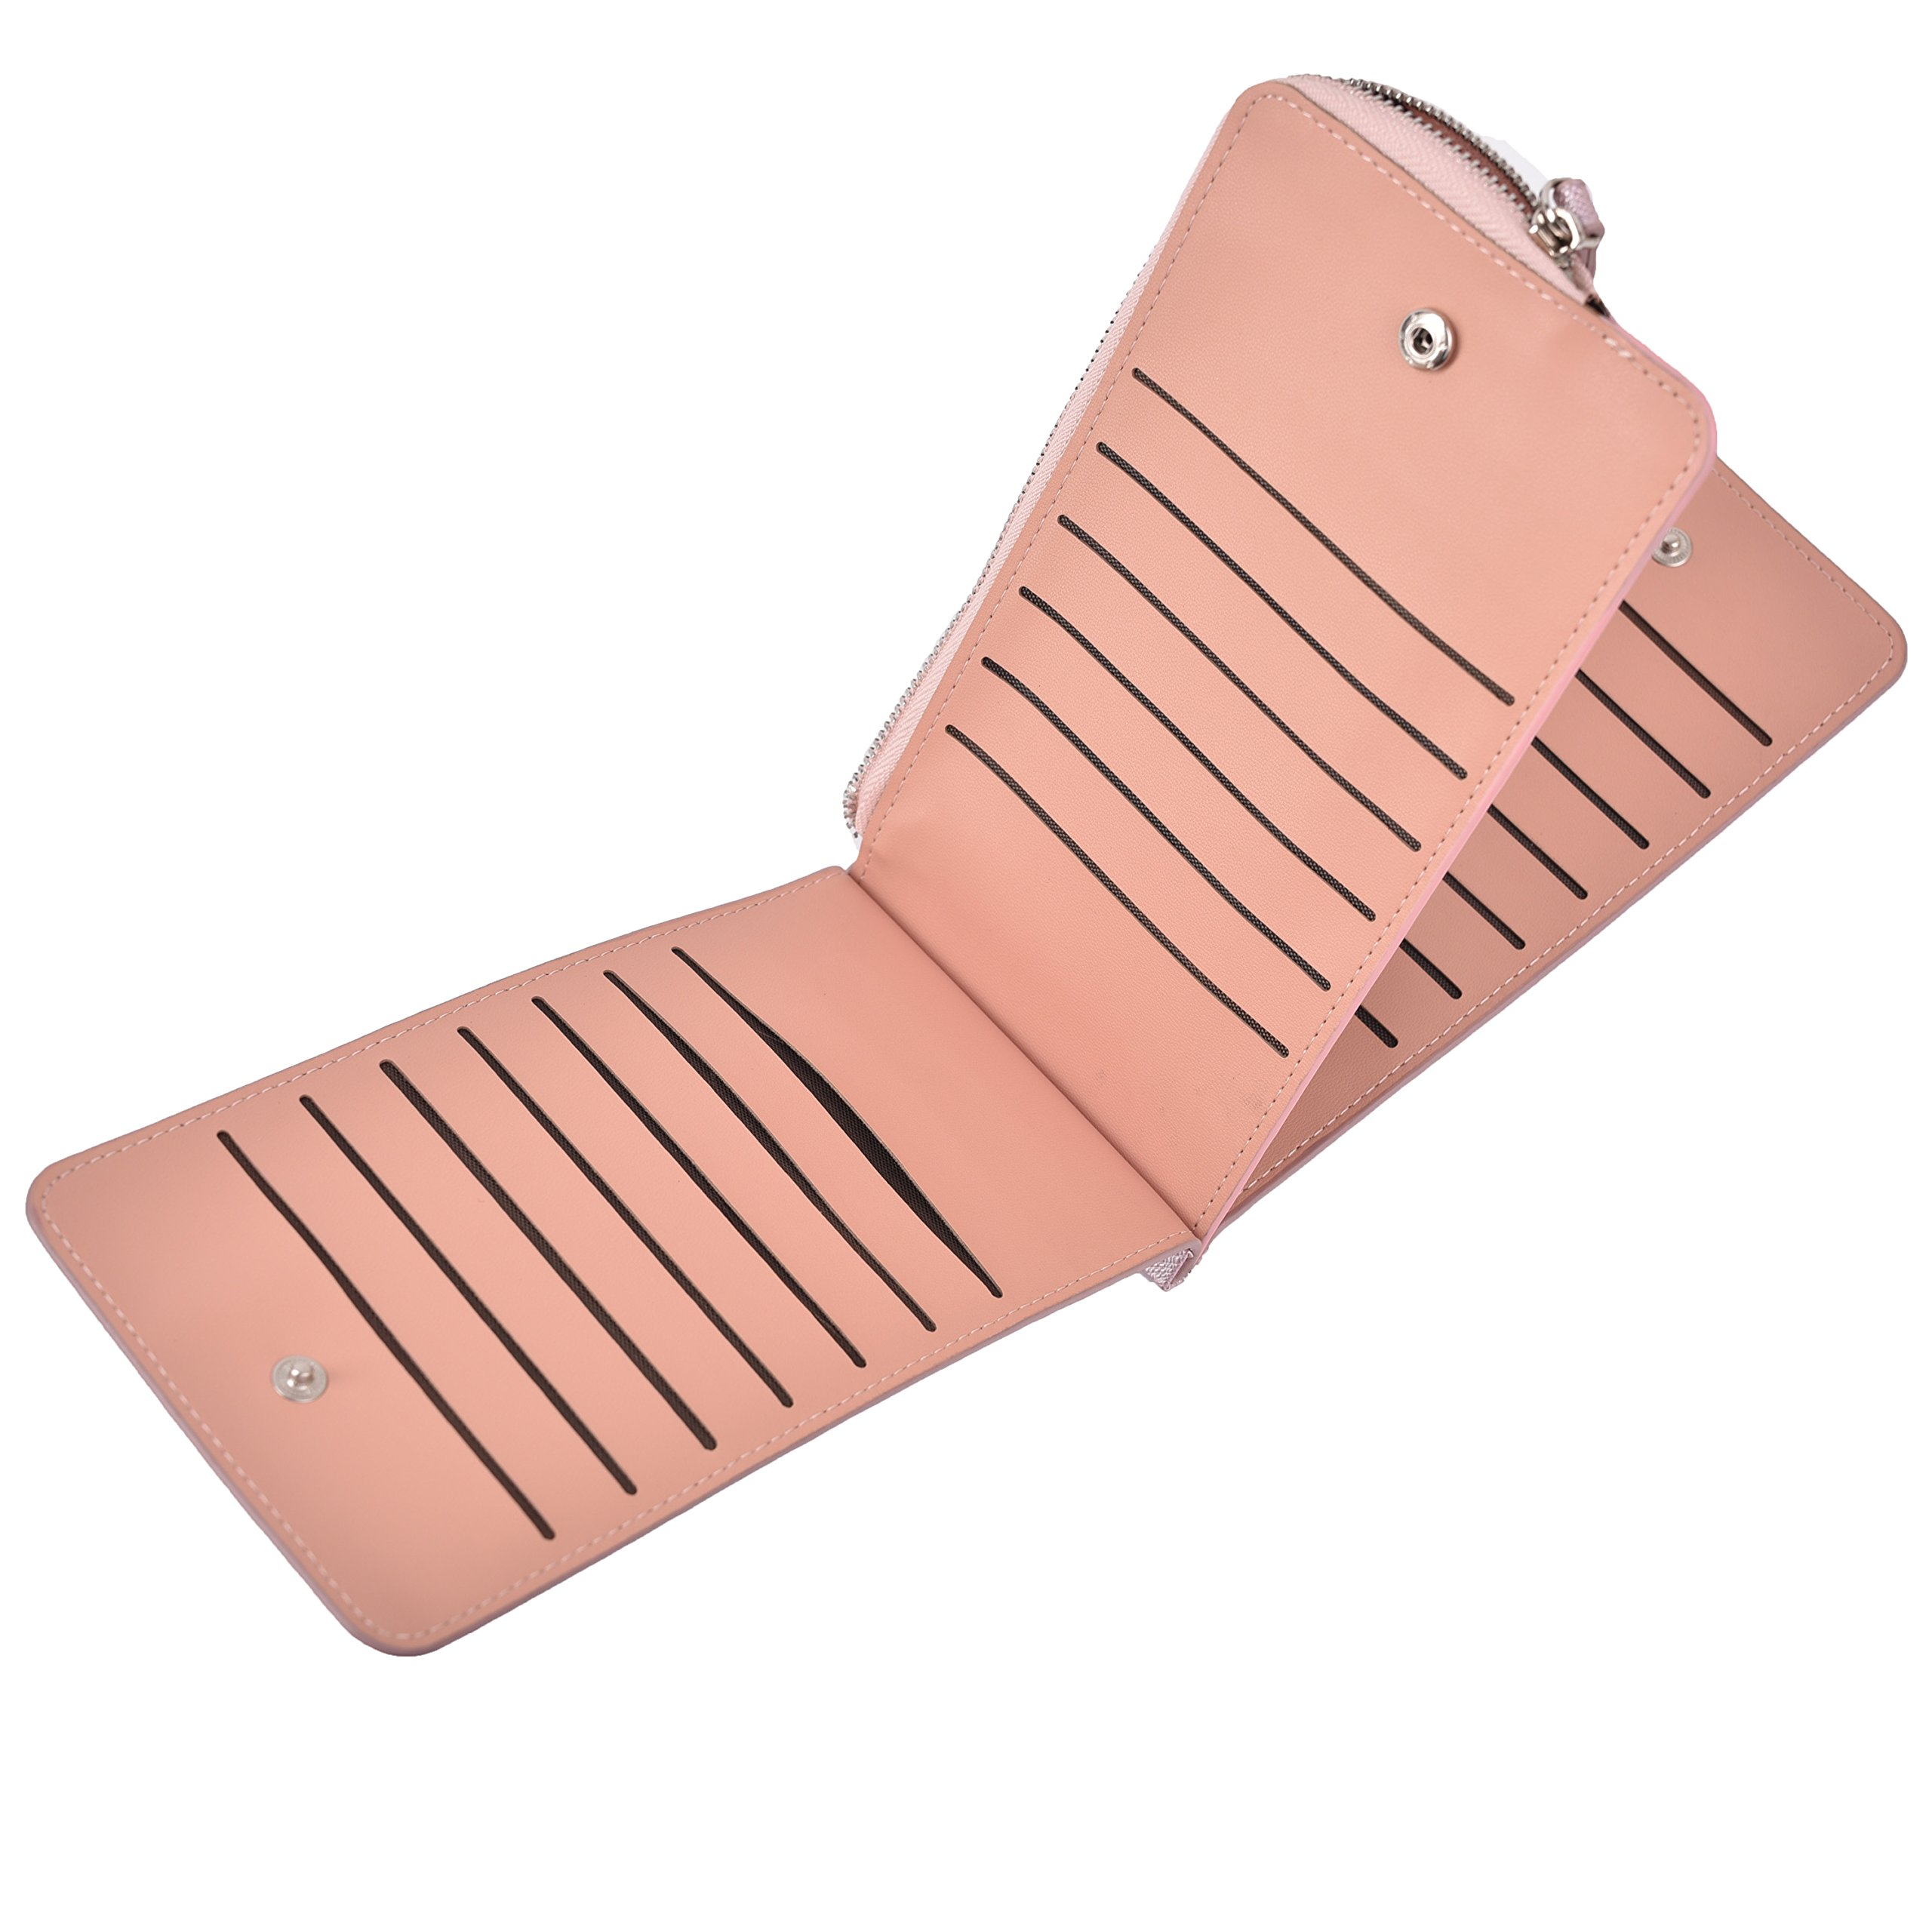 Women's Leather Card Case Holder Wallet Rfid Trifold Thin Zipper Wallet Purse (Light Purple) by Yuhan Pretty (Image #6)